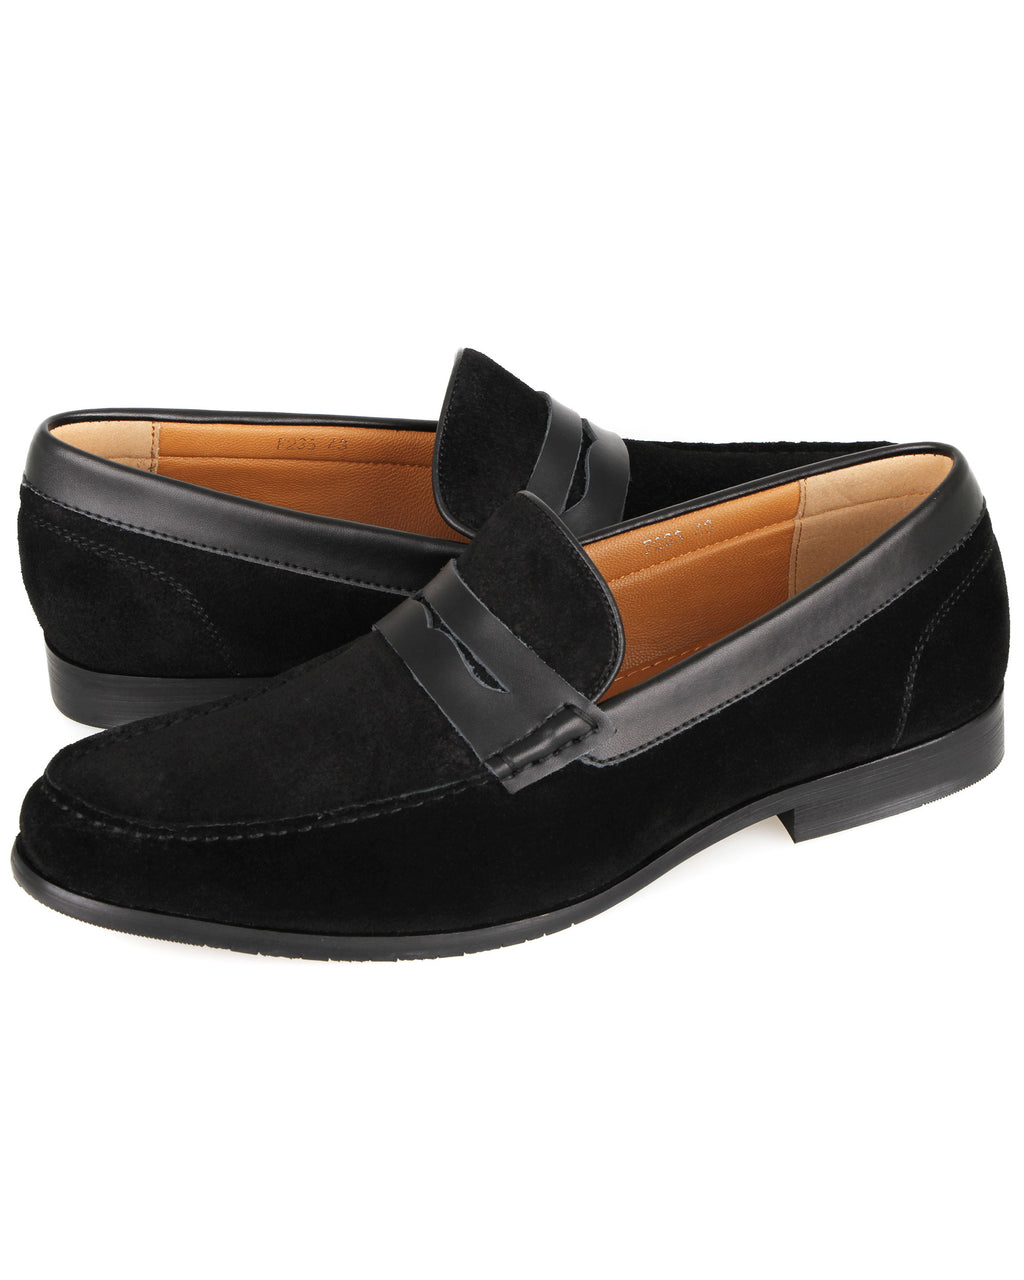 Tomaz F235 Suede Penny Loafers (Black)